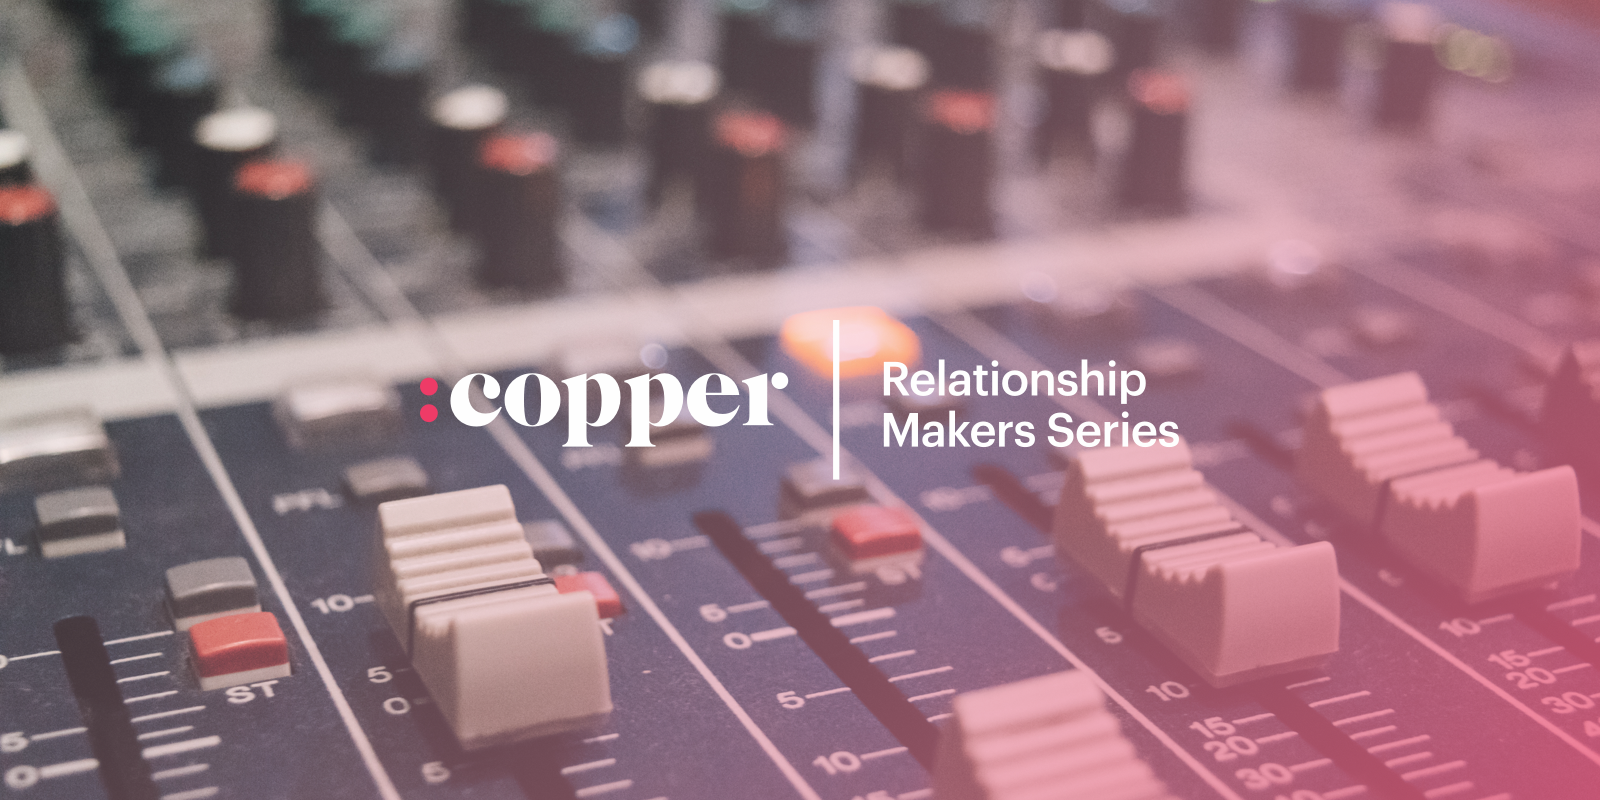 The Relationship-makers Series: How Adelphoi Modernized the Record Label Business